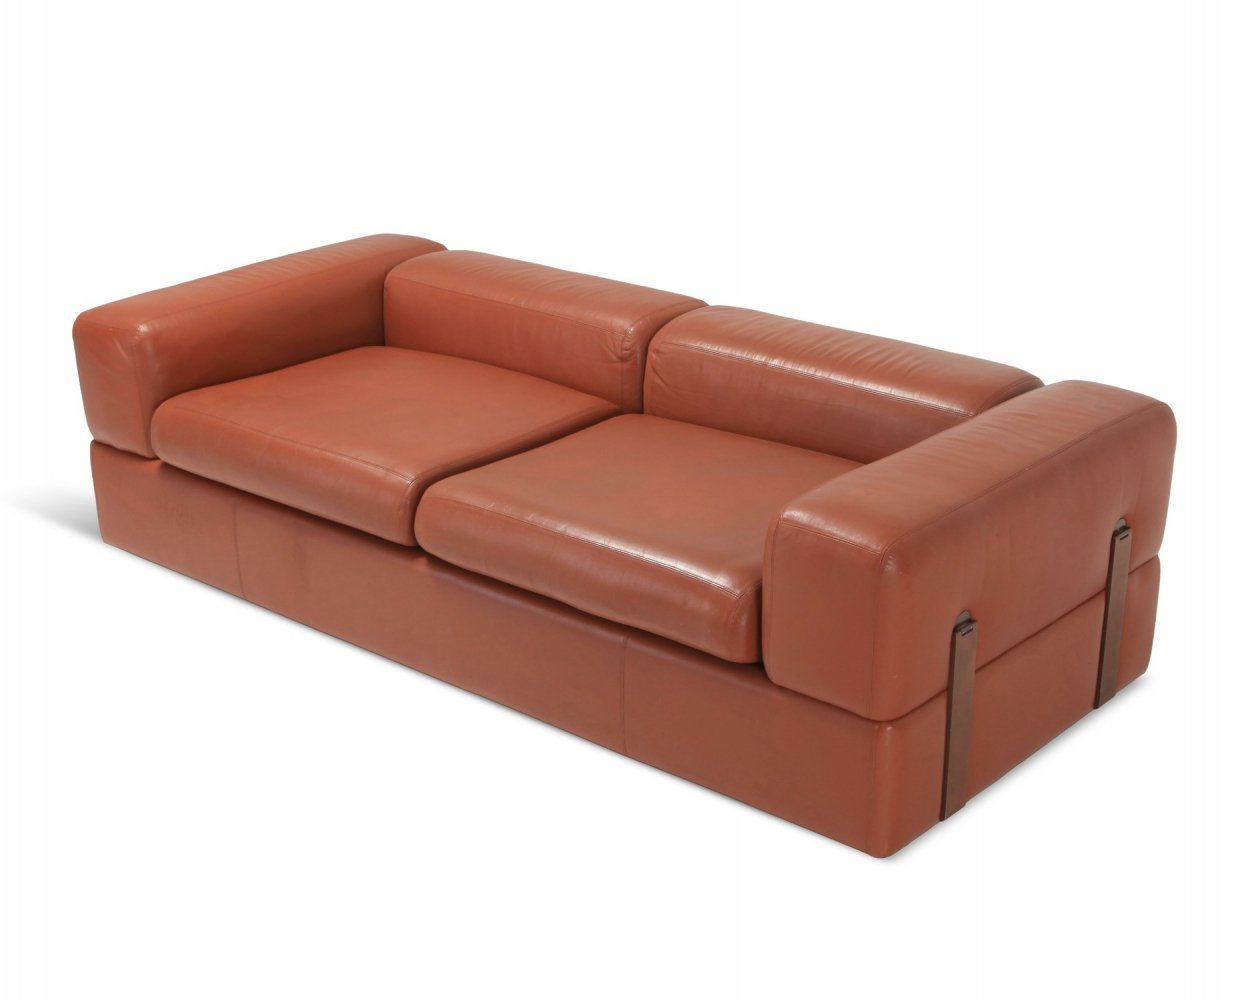 Minimalist Cognac Leather Sofa Bed by Tito Agnoli for Cinova, 1960s